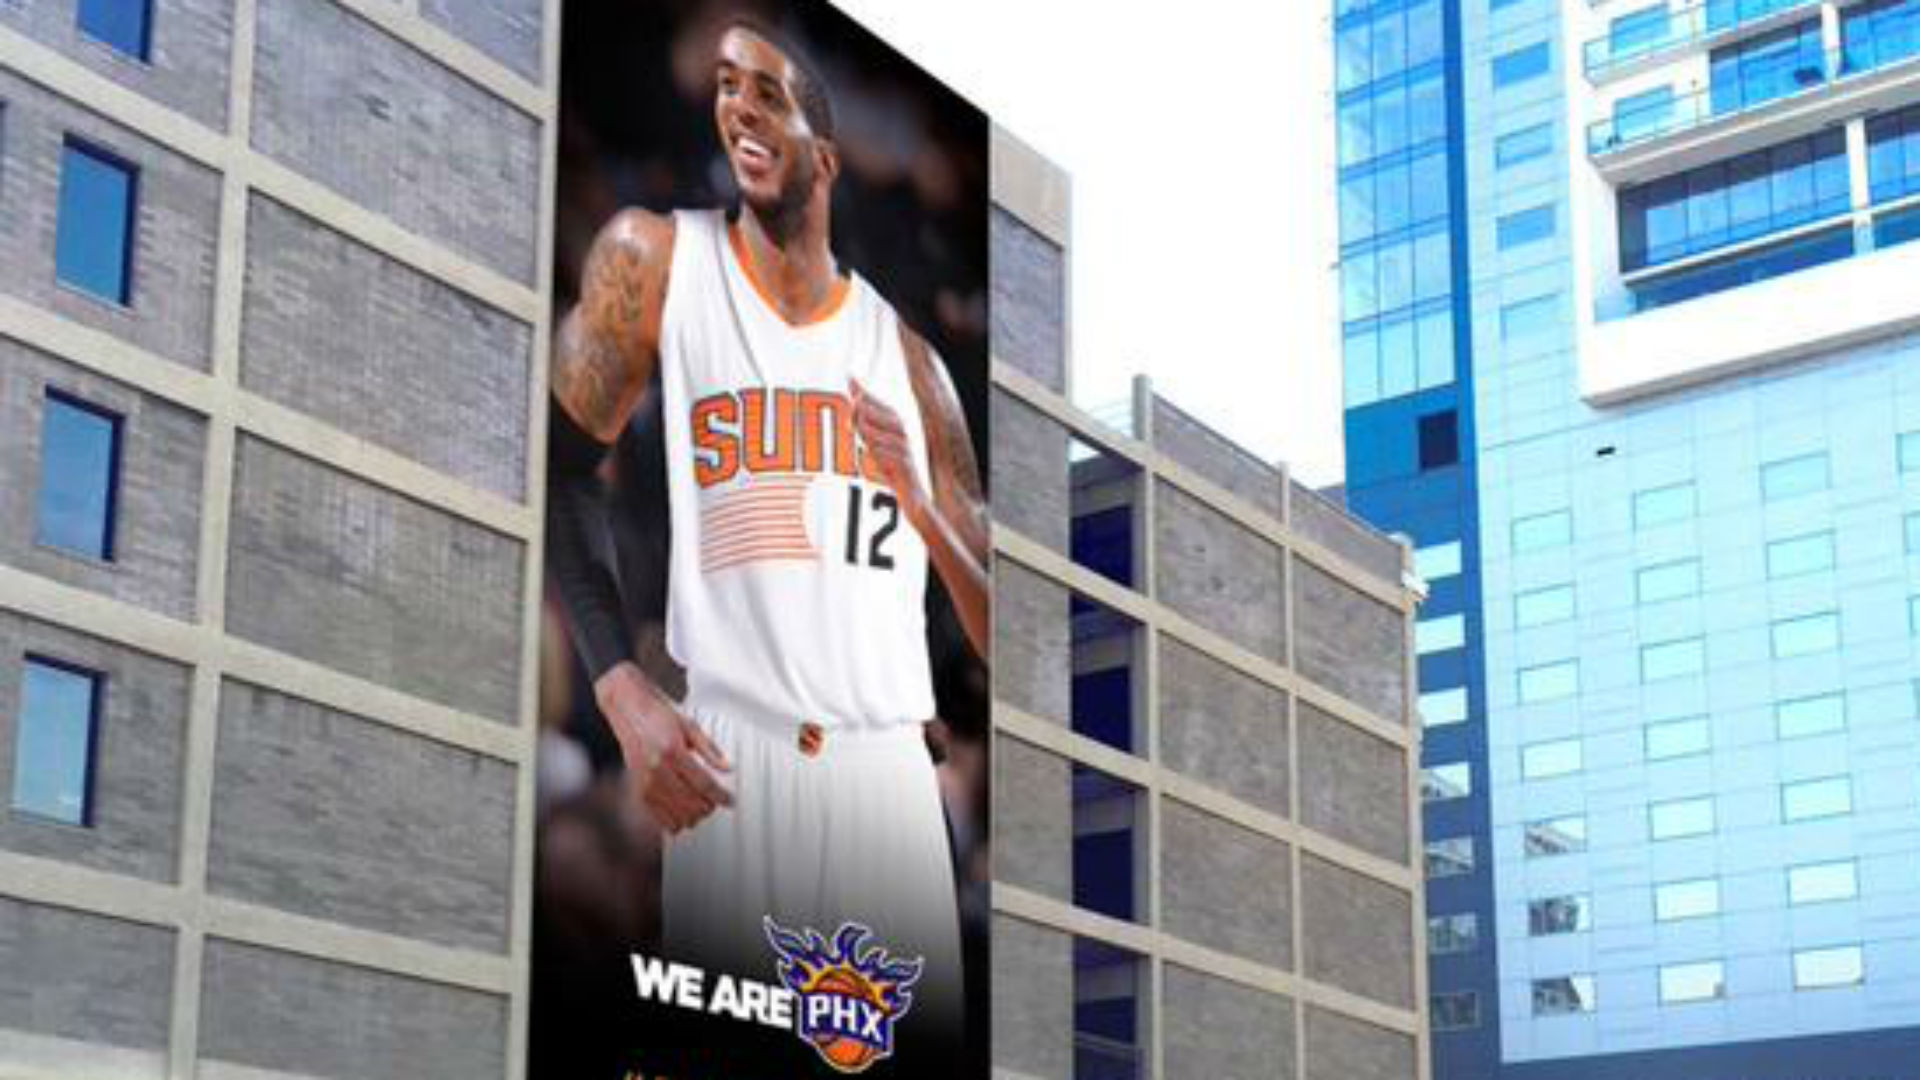 City of Phoenix to recycle wasted LaMarcus Aldridge banner